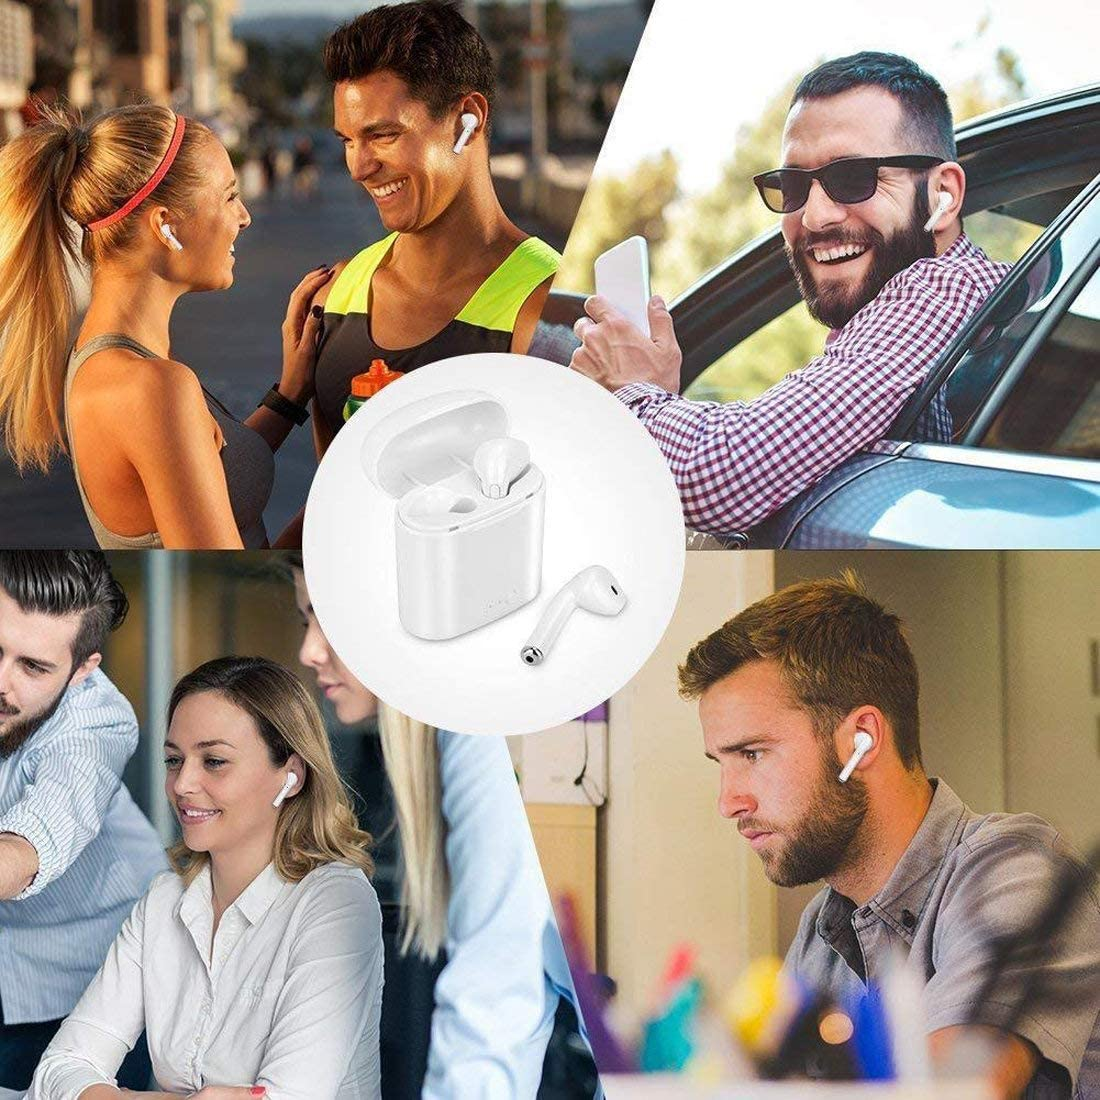 210 Anti-Sweat Earplugs Gym Running for All Smartphones Long Battery Life Wireless Bluetooth Earbuds with Portable Charging Case in-Ear Noise Cancelling Stereo Headset